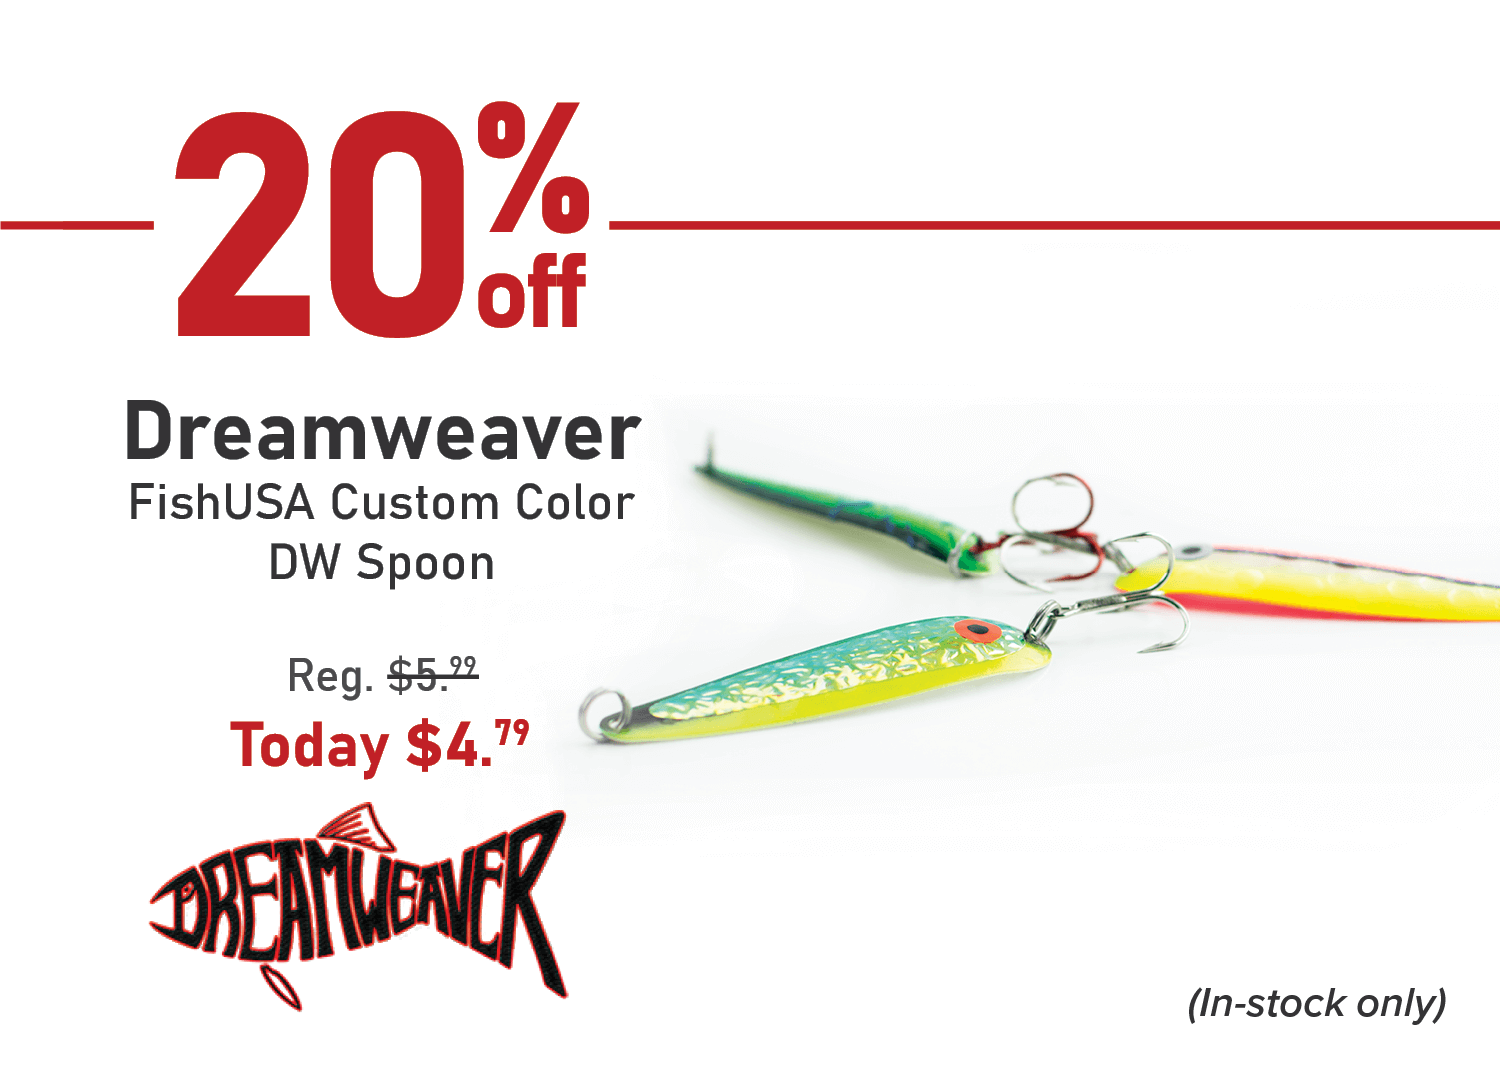 Save 20% on the Dreamweaver FishUSA Custom Color DW Spoon